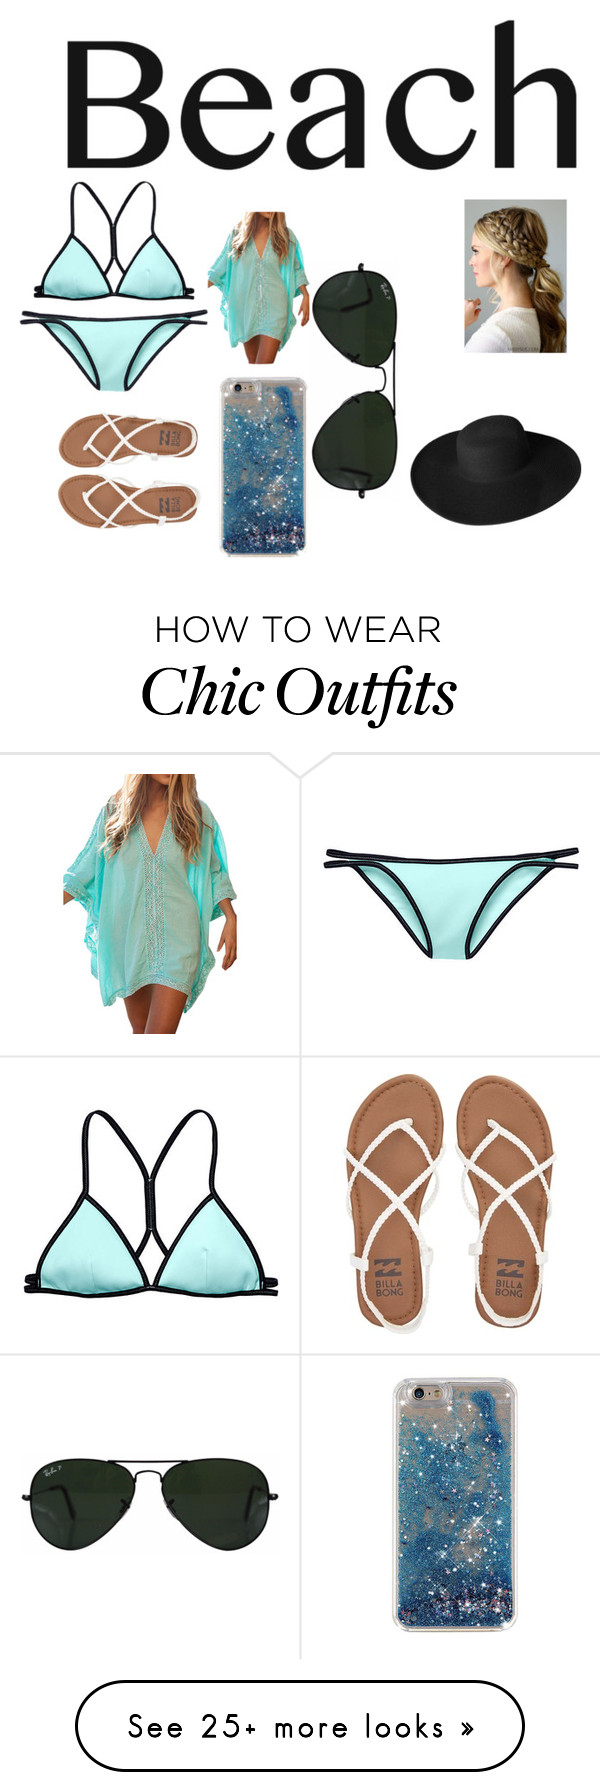 """Chilling In The Sand, Hot And Sezy Look"" by natarjia on Polyvore featuring Victoria's Secret, Billabong, Ray-Ban, Dorfman Pacific, beach and summerdate"